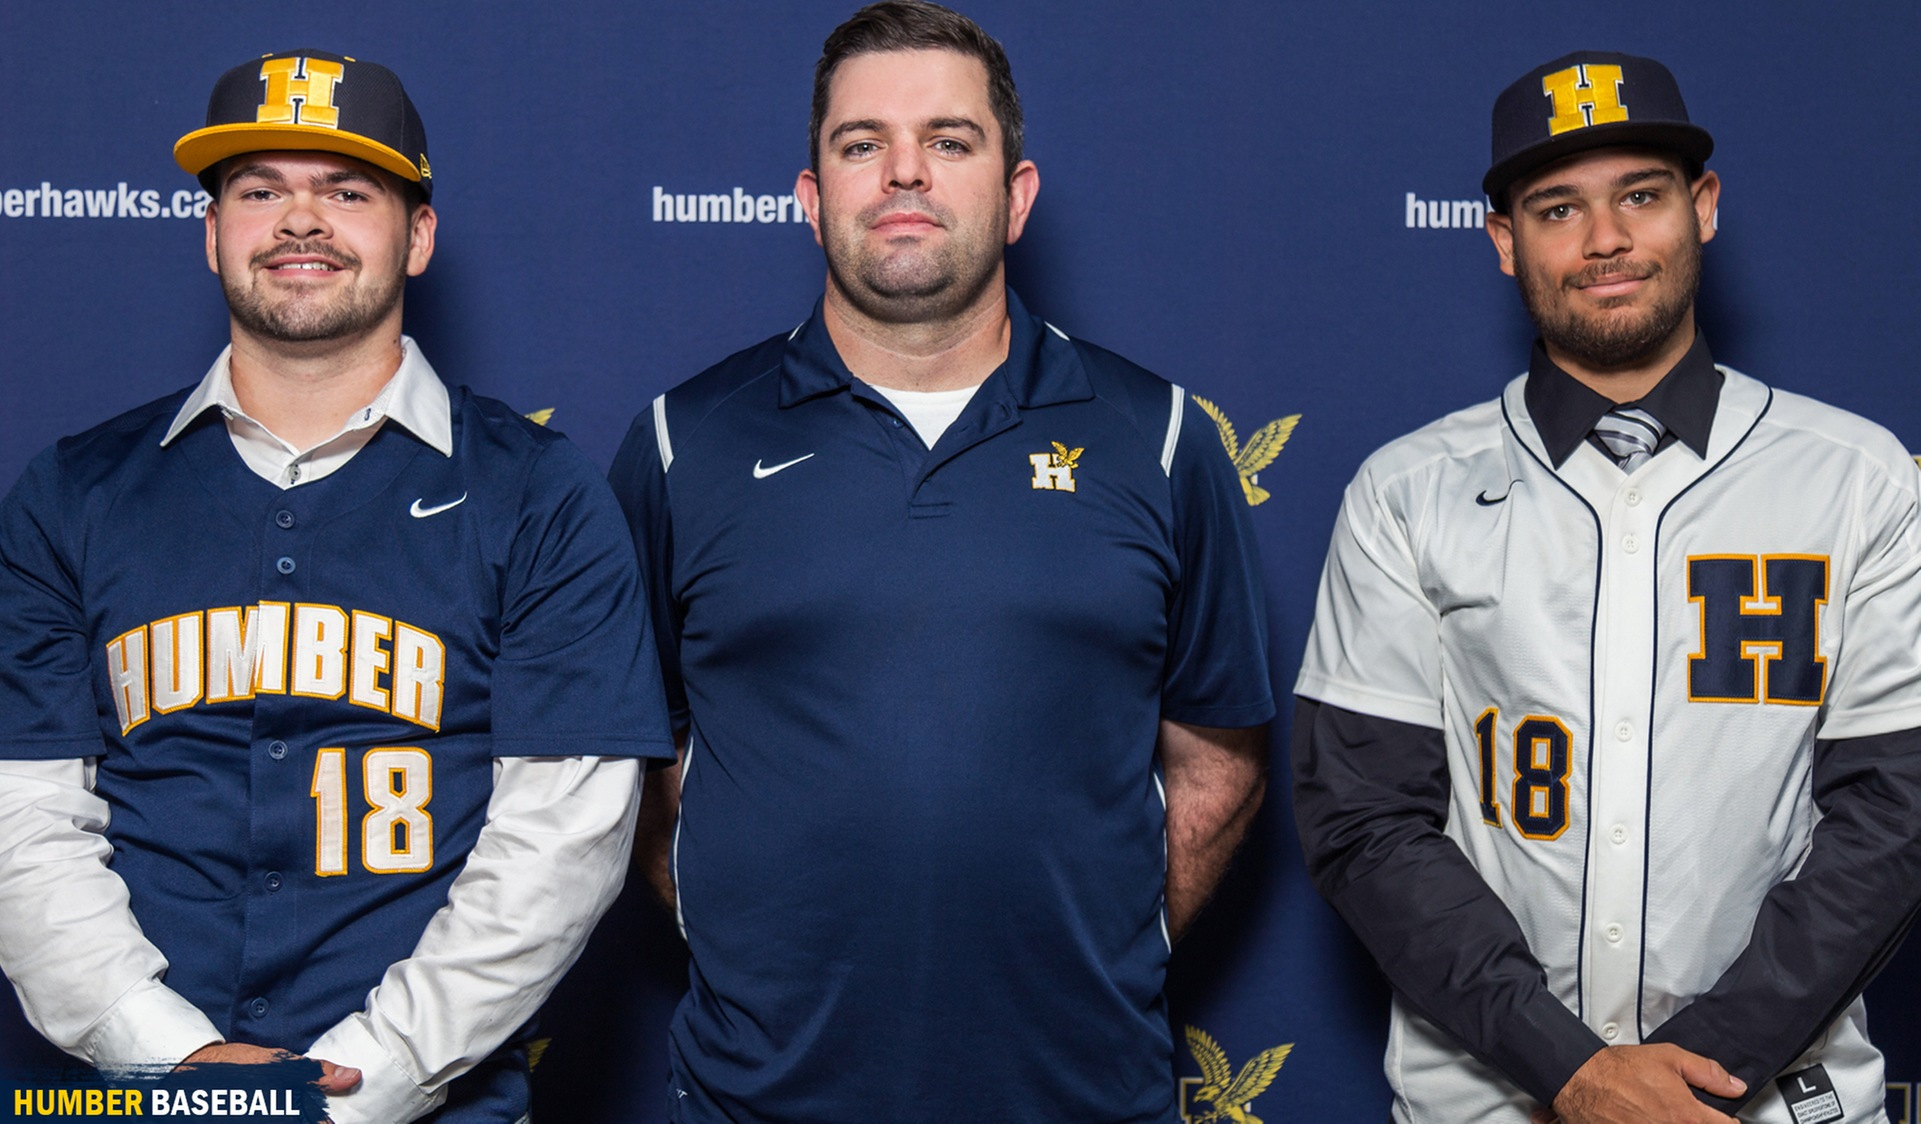 Humber Baseball Adds Two More Recruits to 2018 Signing Class